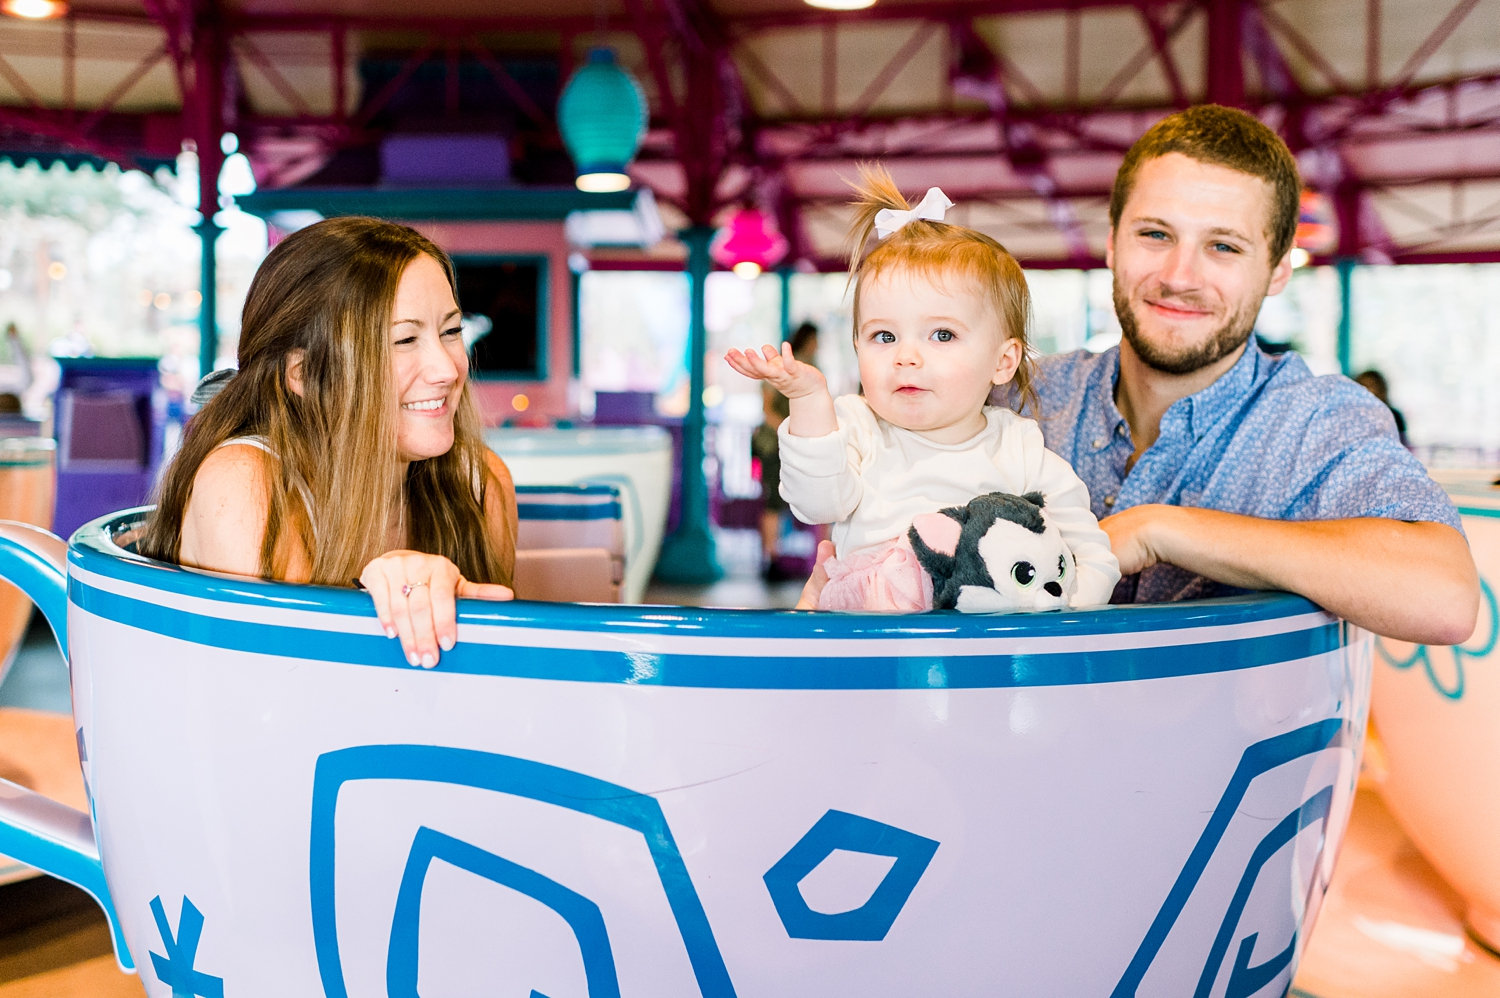 mom and dad with little girl, Disney World teacup ride, Magic Session, Rya Duncklee